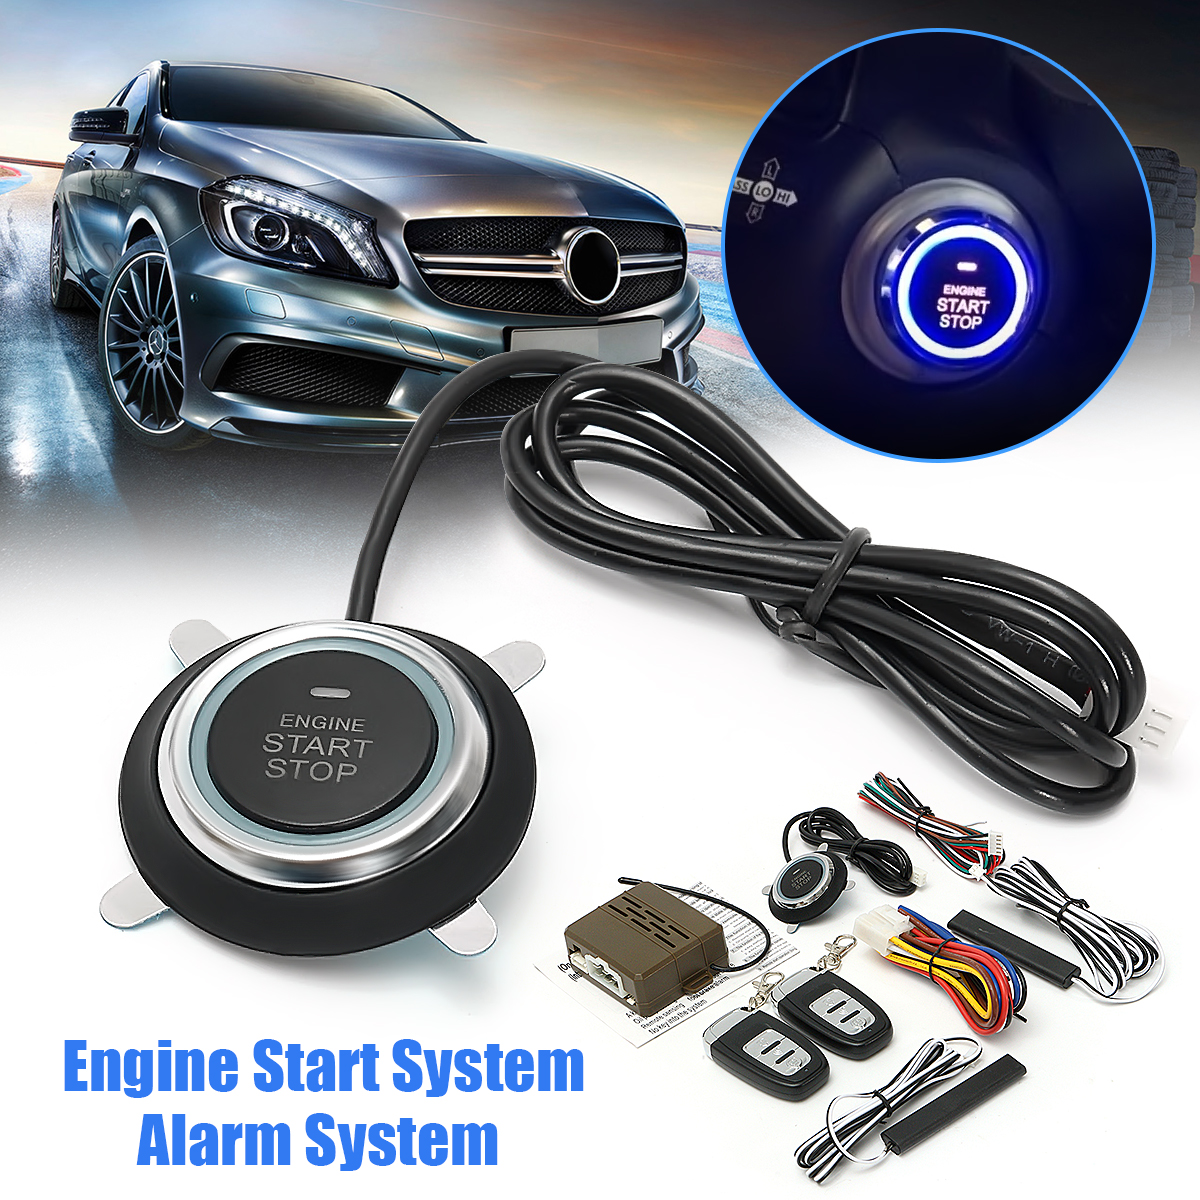 Audew 9pcs Car Engine Start Stop SUV Keyless Entry Engine Start Alarm System Push Button Remote Starter Stop Auto